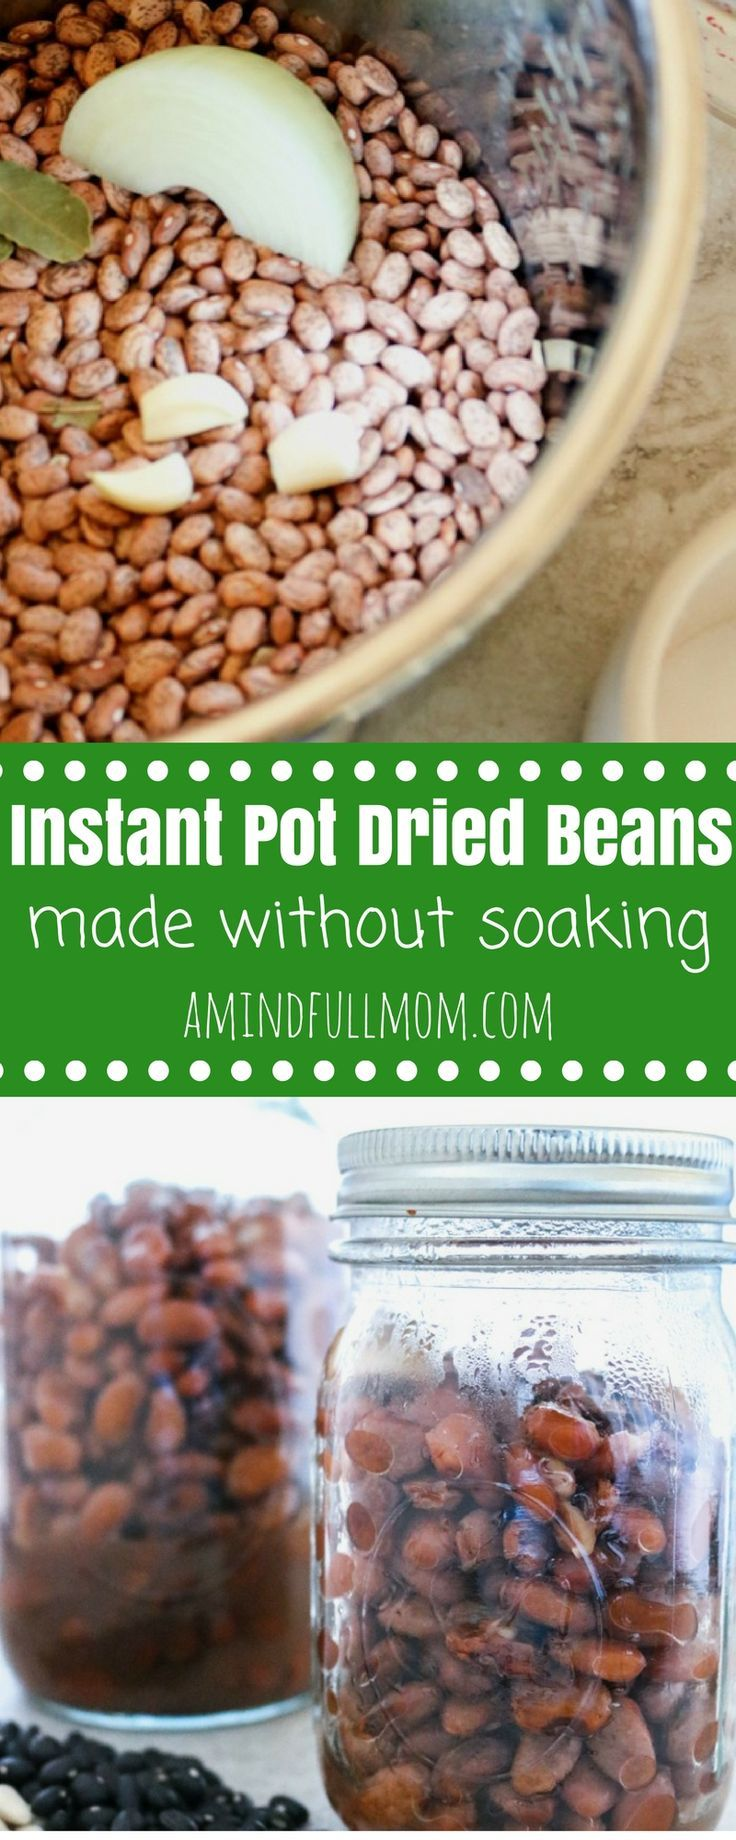 Insant Pot Beans How To Cook Dried Beans With No Soaking Get Canned Bean Texture In Less Tha Cooking Dried Beans Instant Pot Dinner Recipes How To Cook Beans